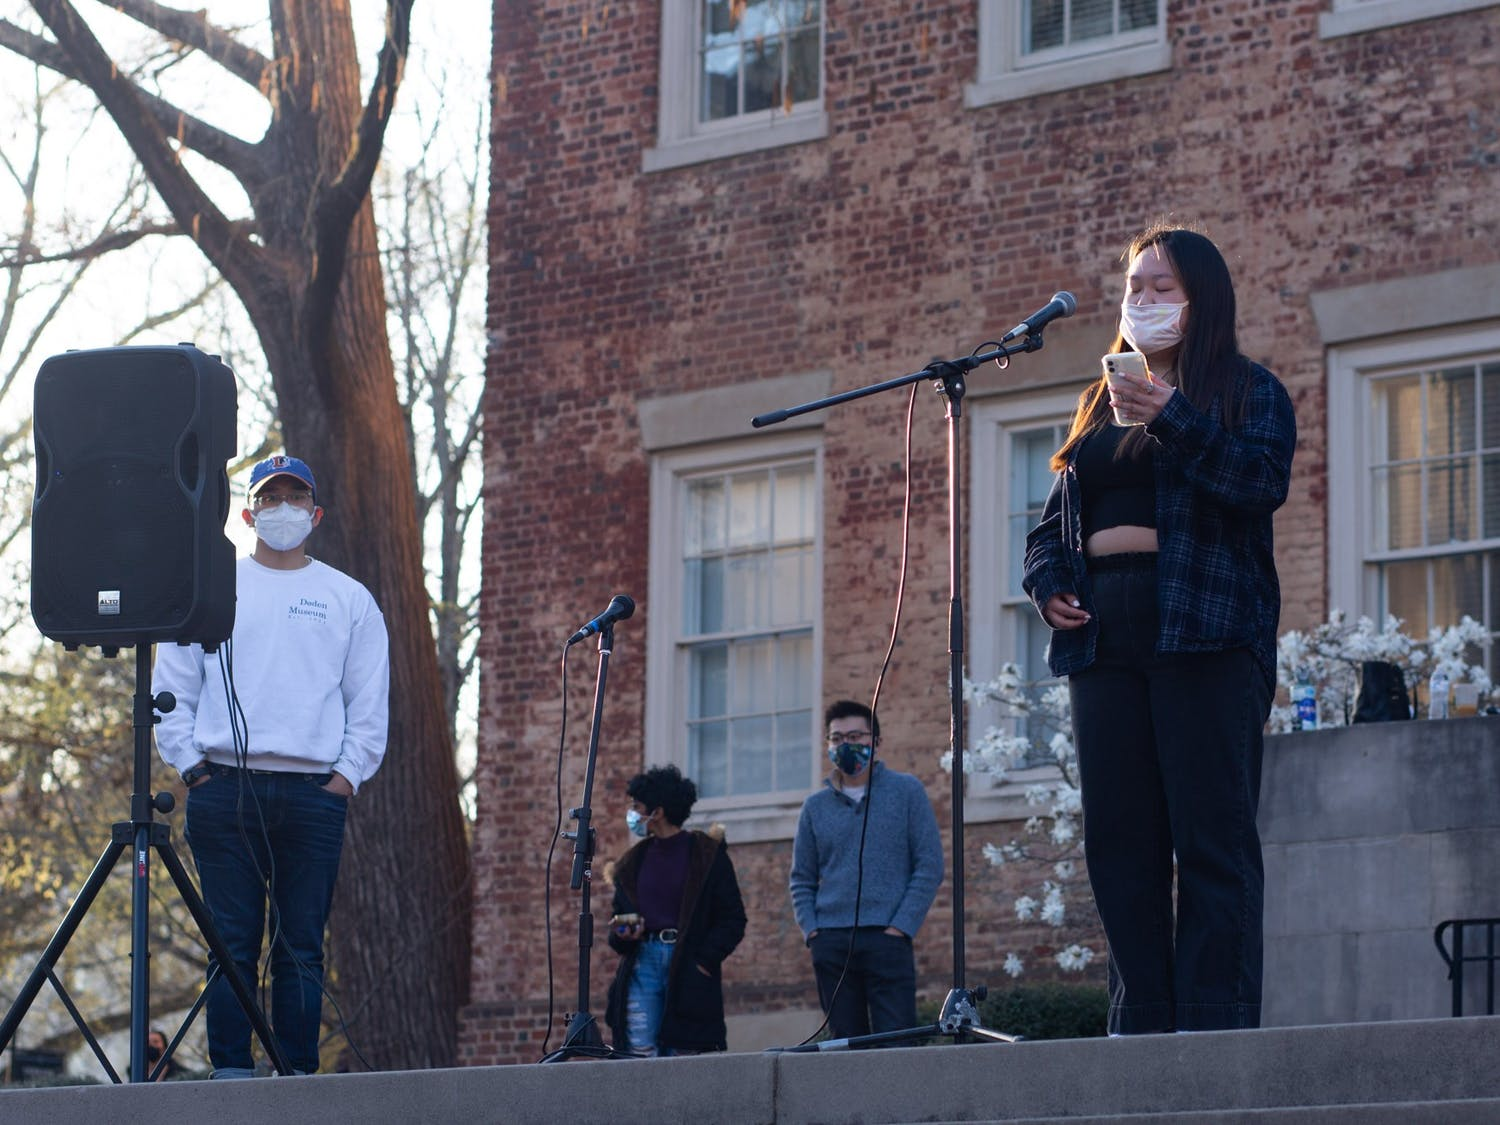 Students gathered to speak and share thoughts during a vigil in honor of the lives 8 lives lost in Atlanta on March 16, 2021.